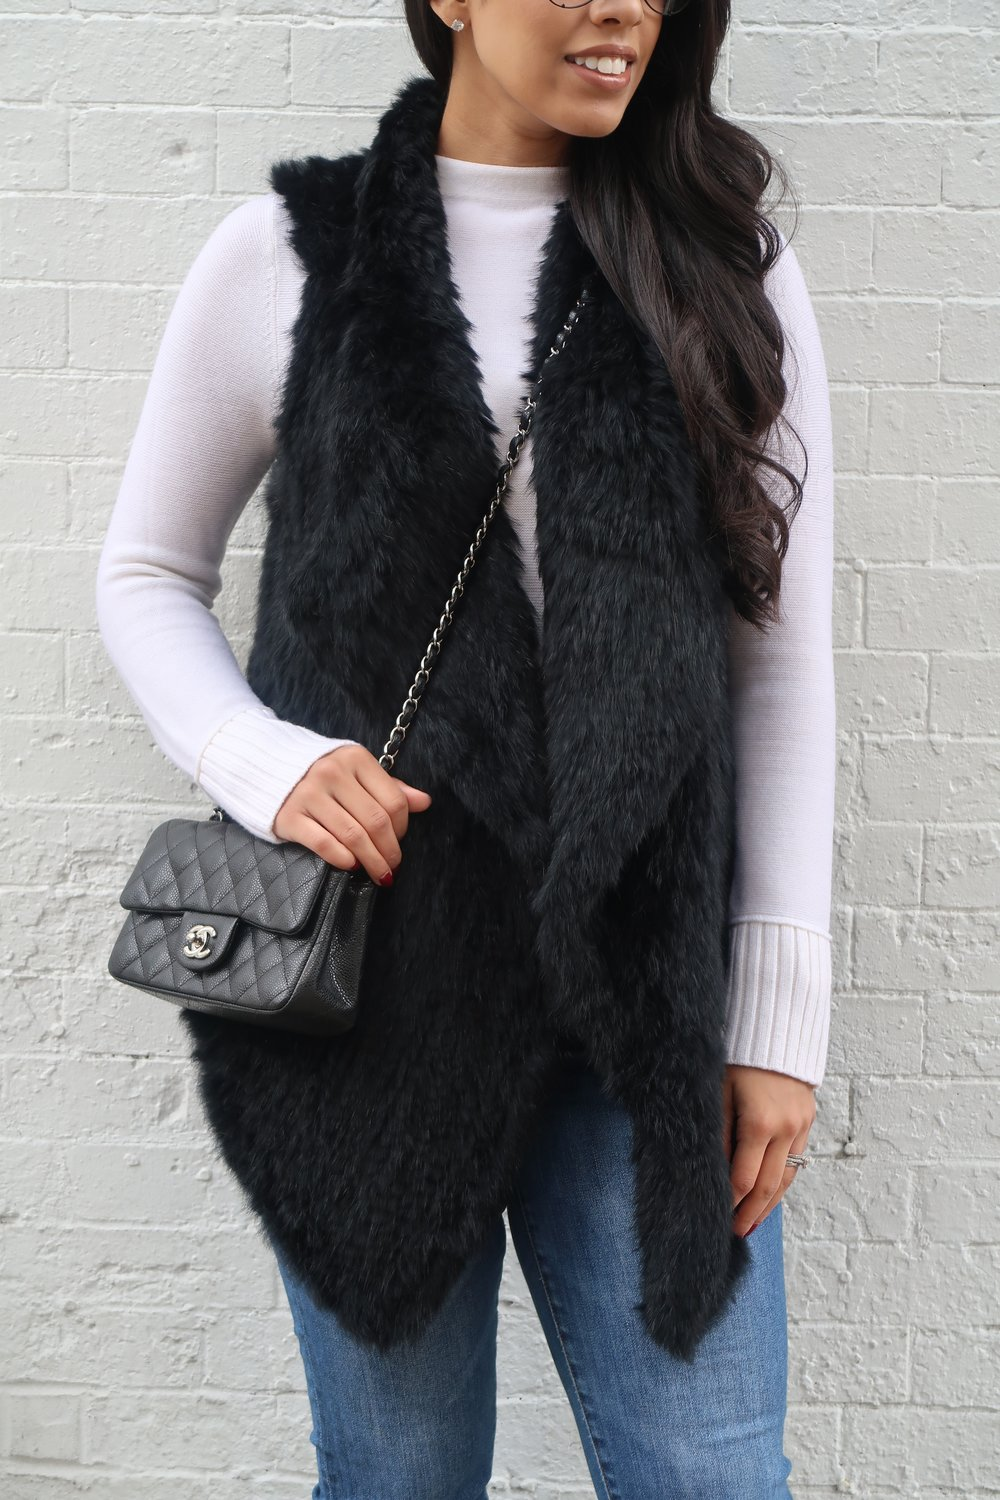 fur-vest-chanel-bag-fashion-blogger-mygoldenbeauty.jpg